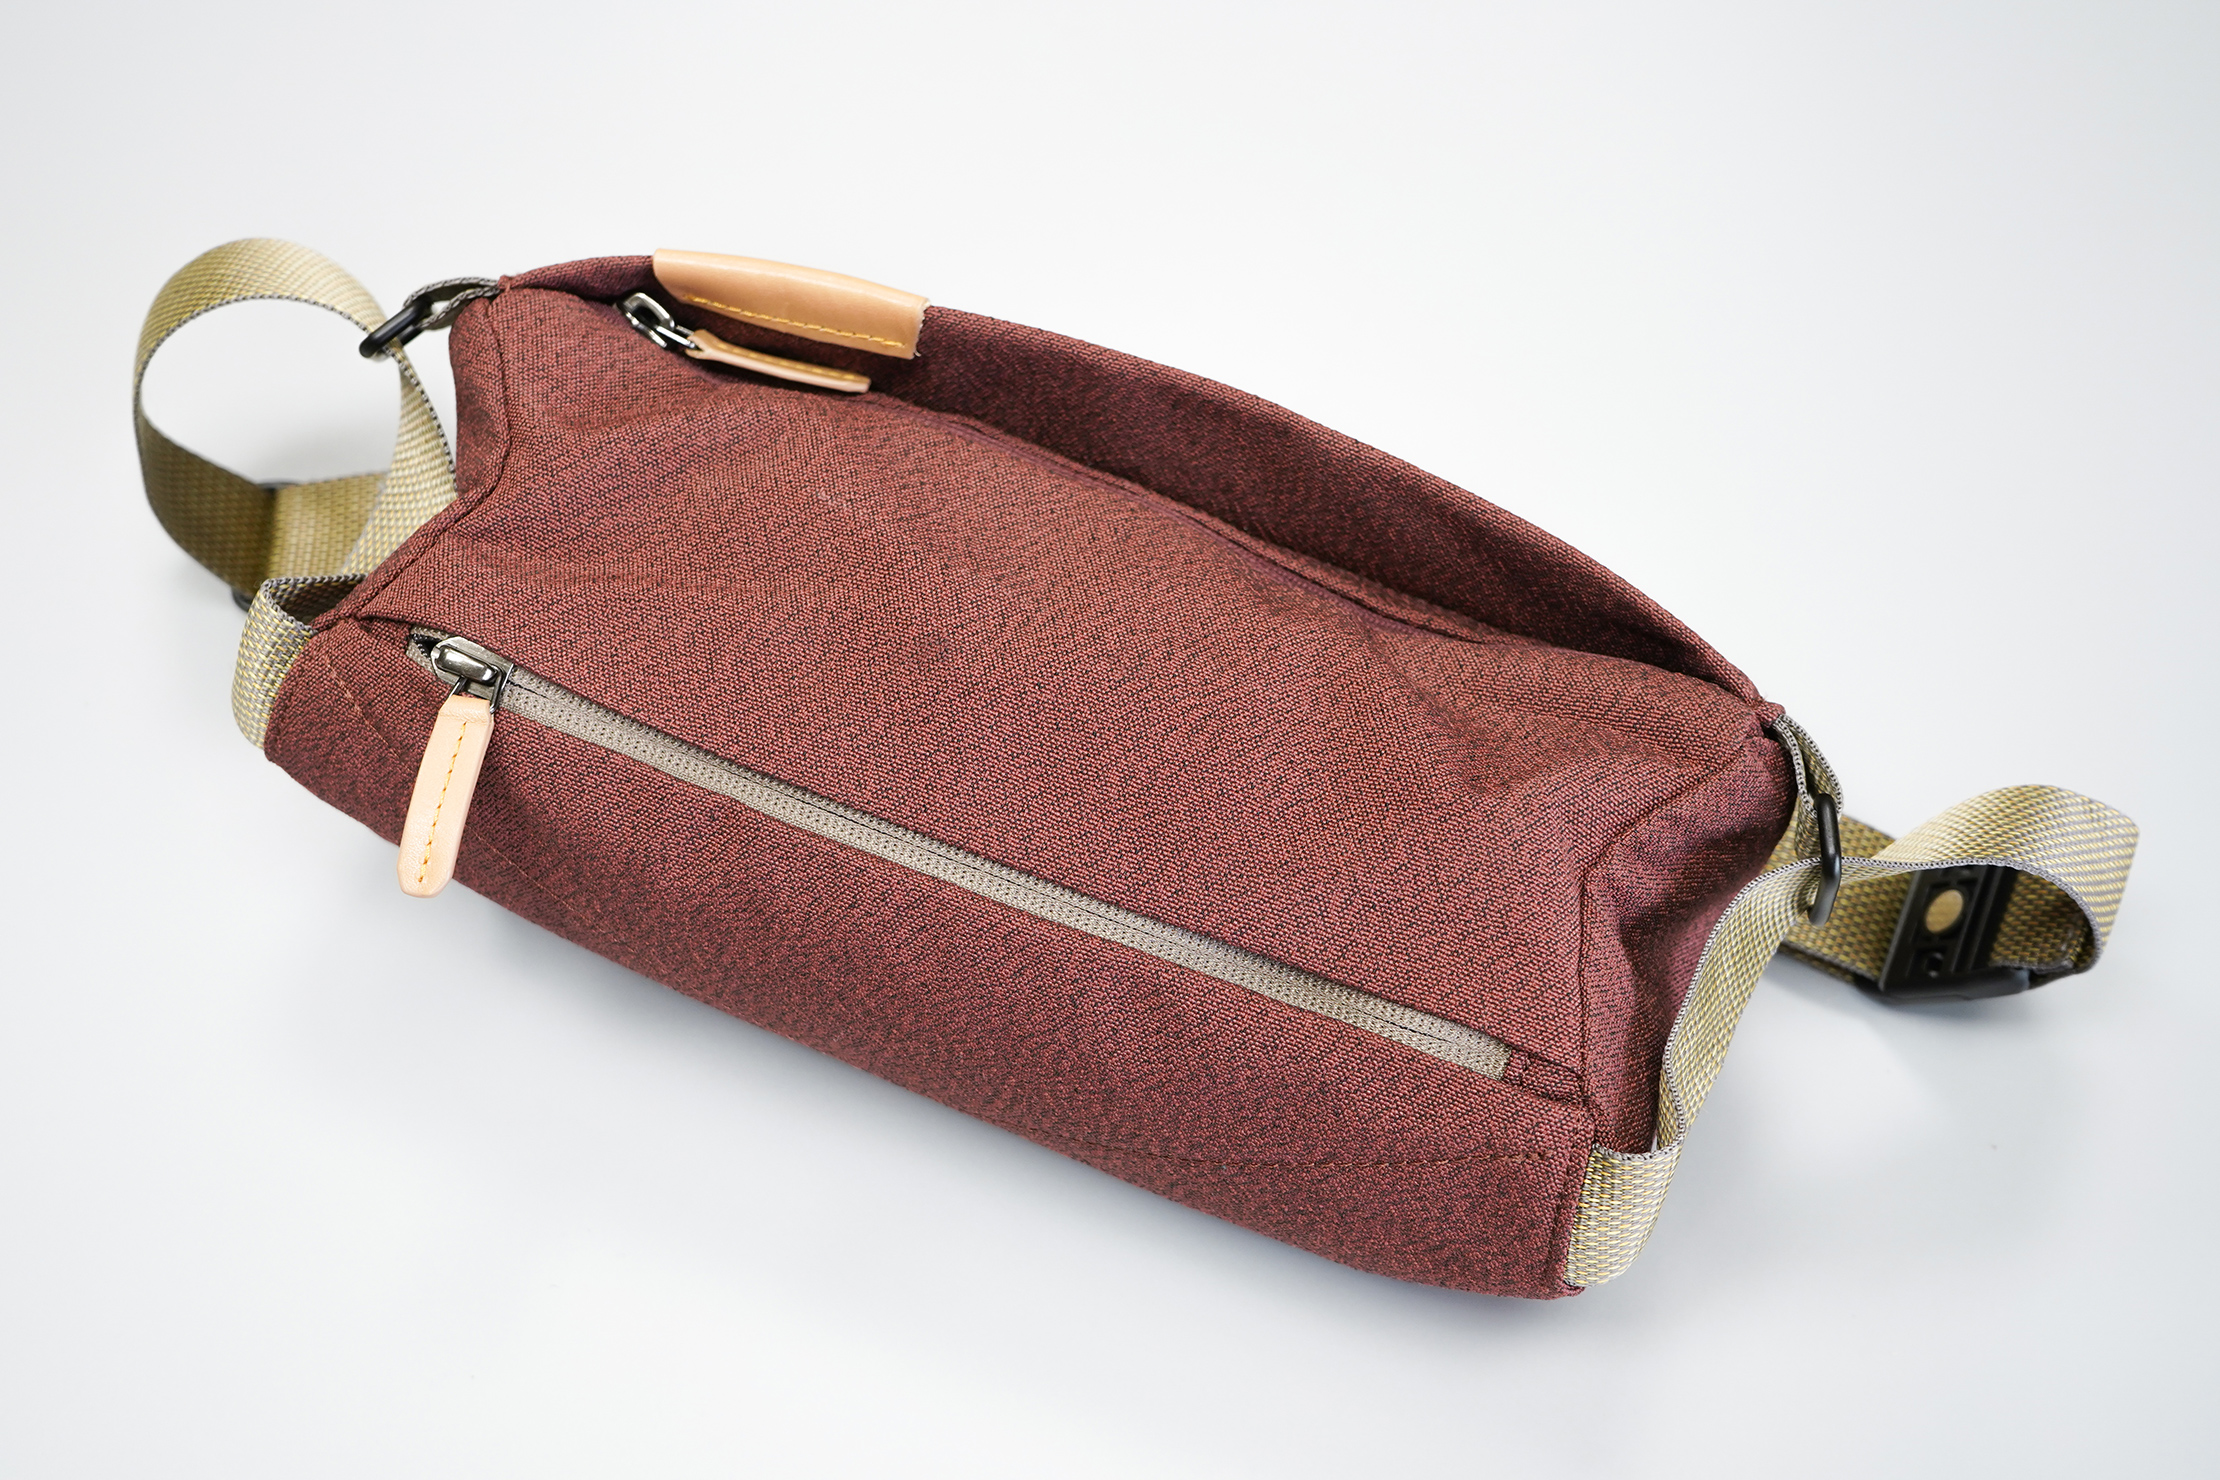 Bellroy Sling Mini | Top of the sling